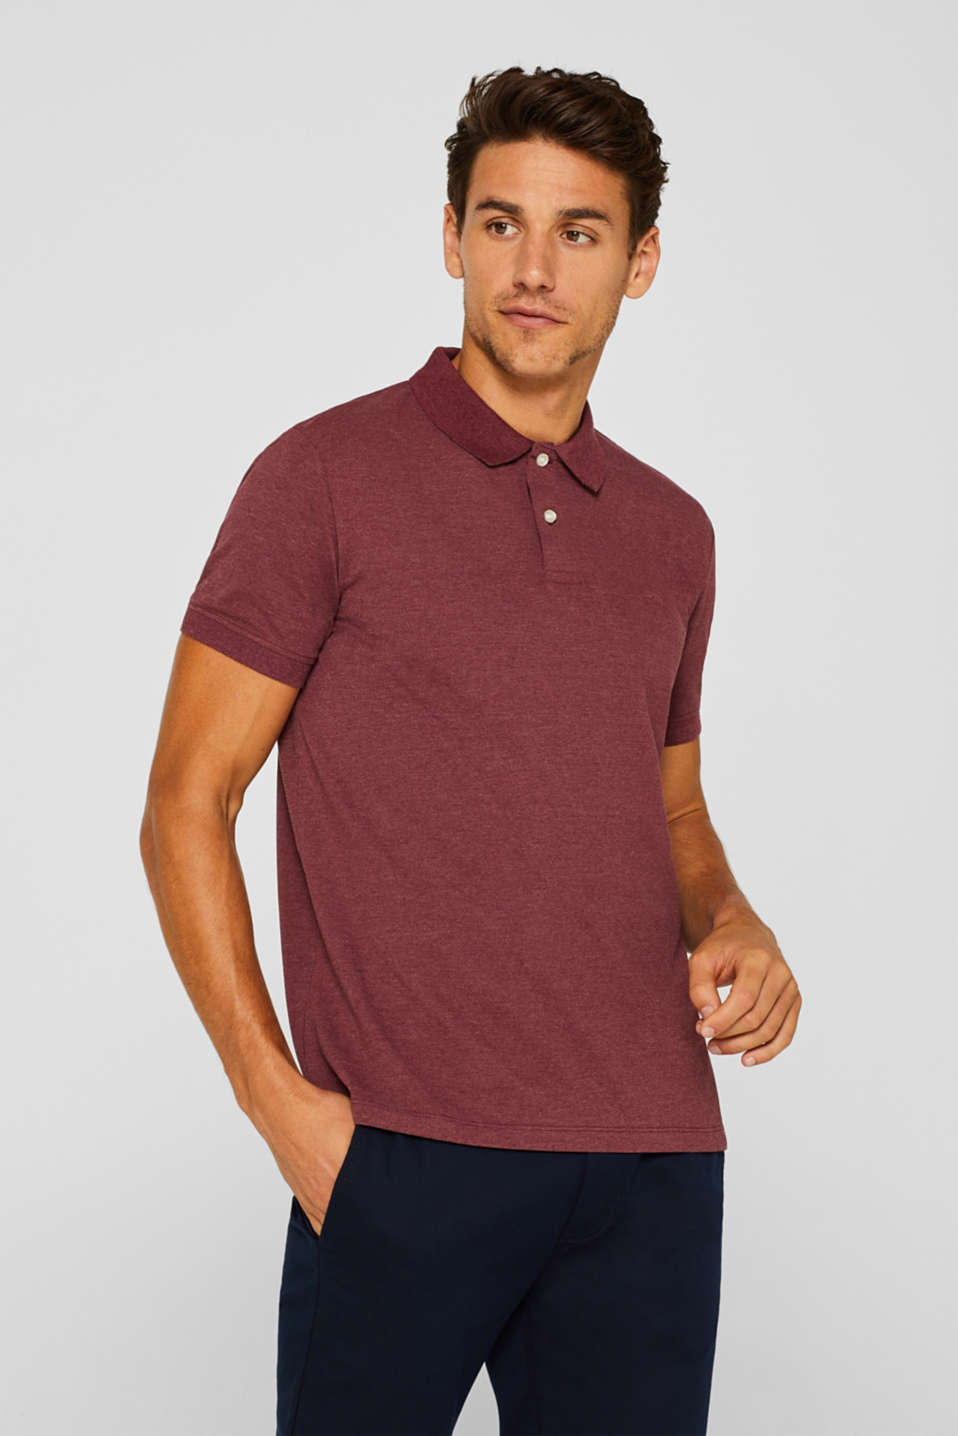 Esprit - Piqué polo shirt in blended cotton